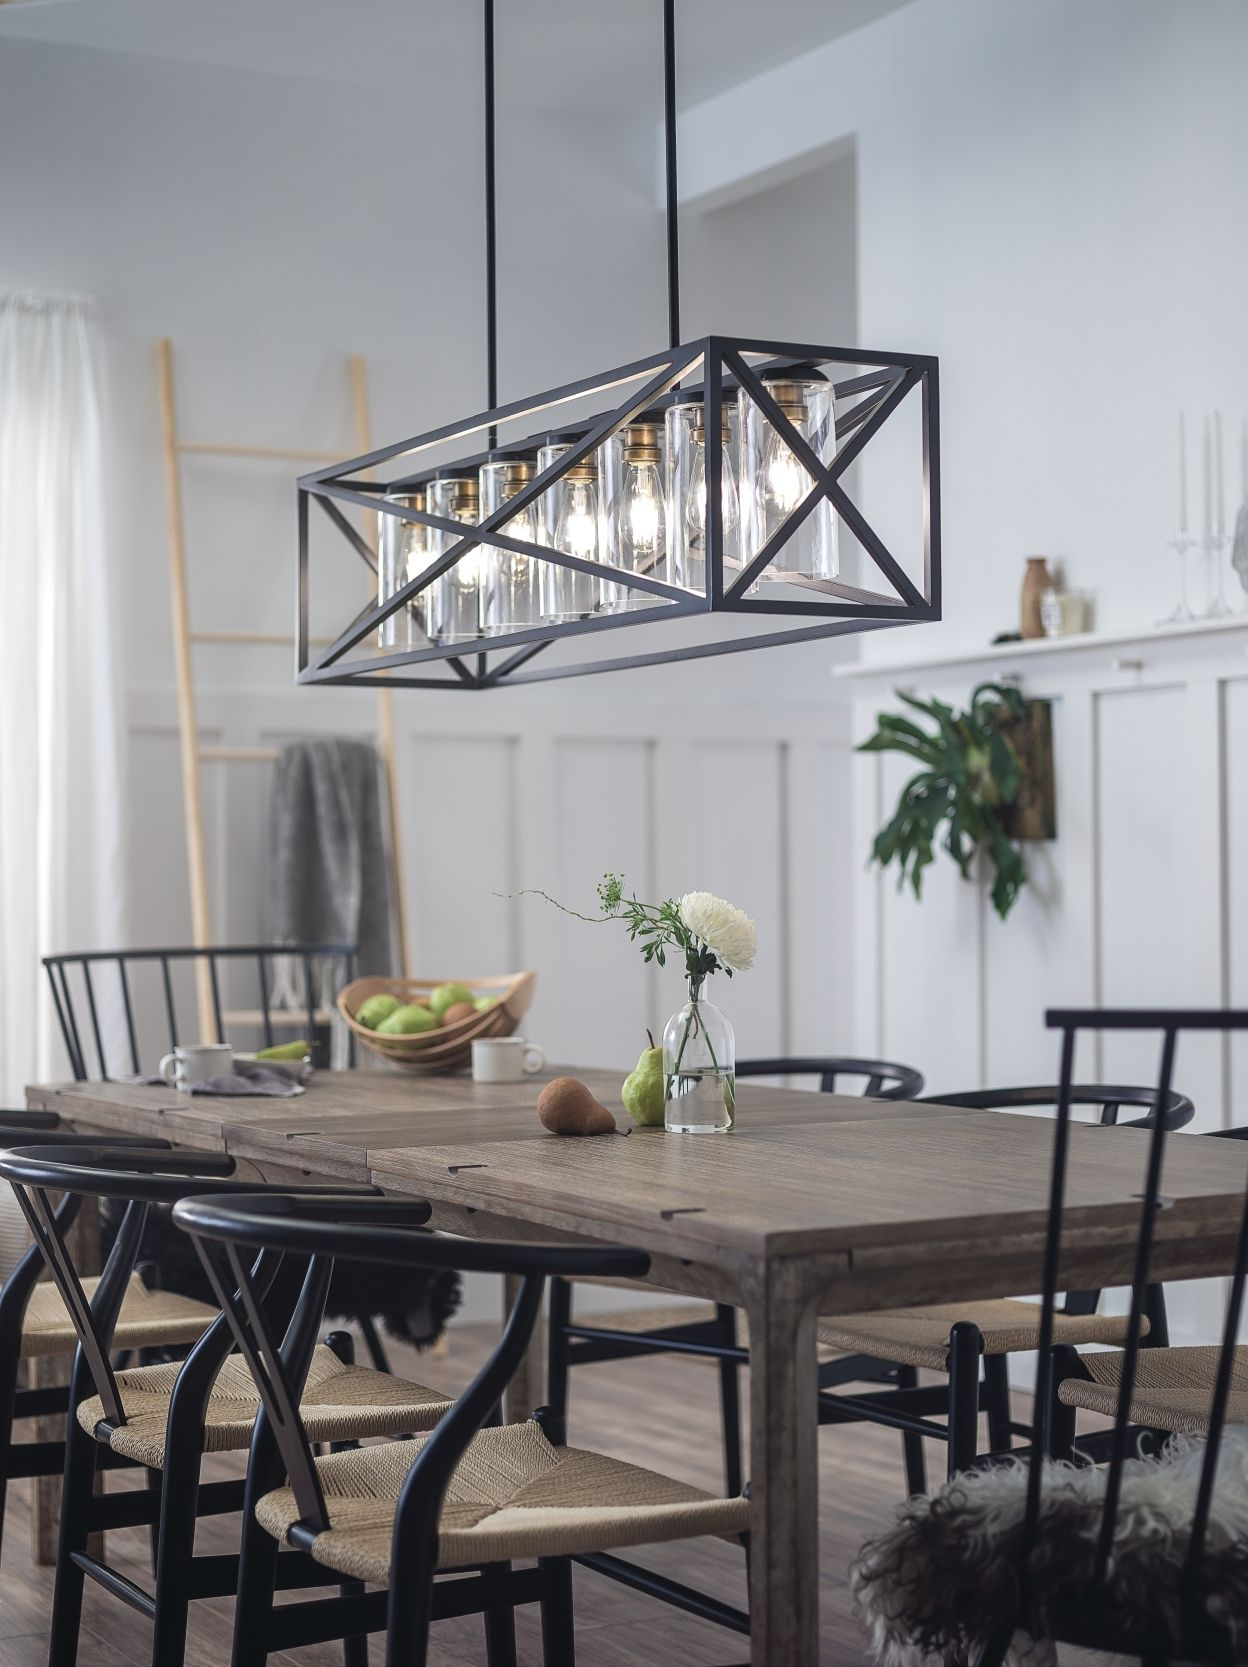 Kichler Moorgate Linear Chandelier 7 Light In Black In 2019 Pertaining To Freemont 5 Light Kitchen Island Linear Chandeliers (View 21 of 30)